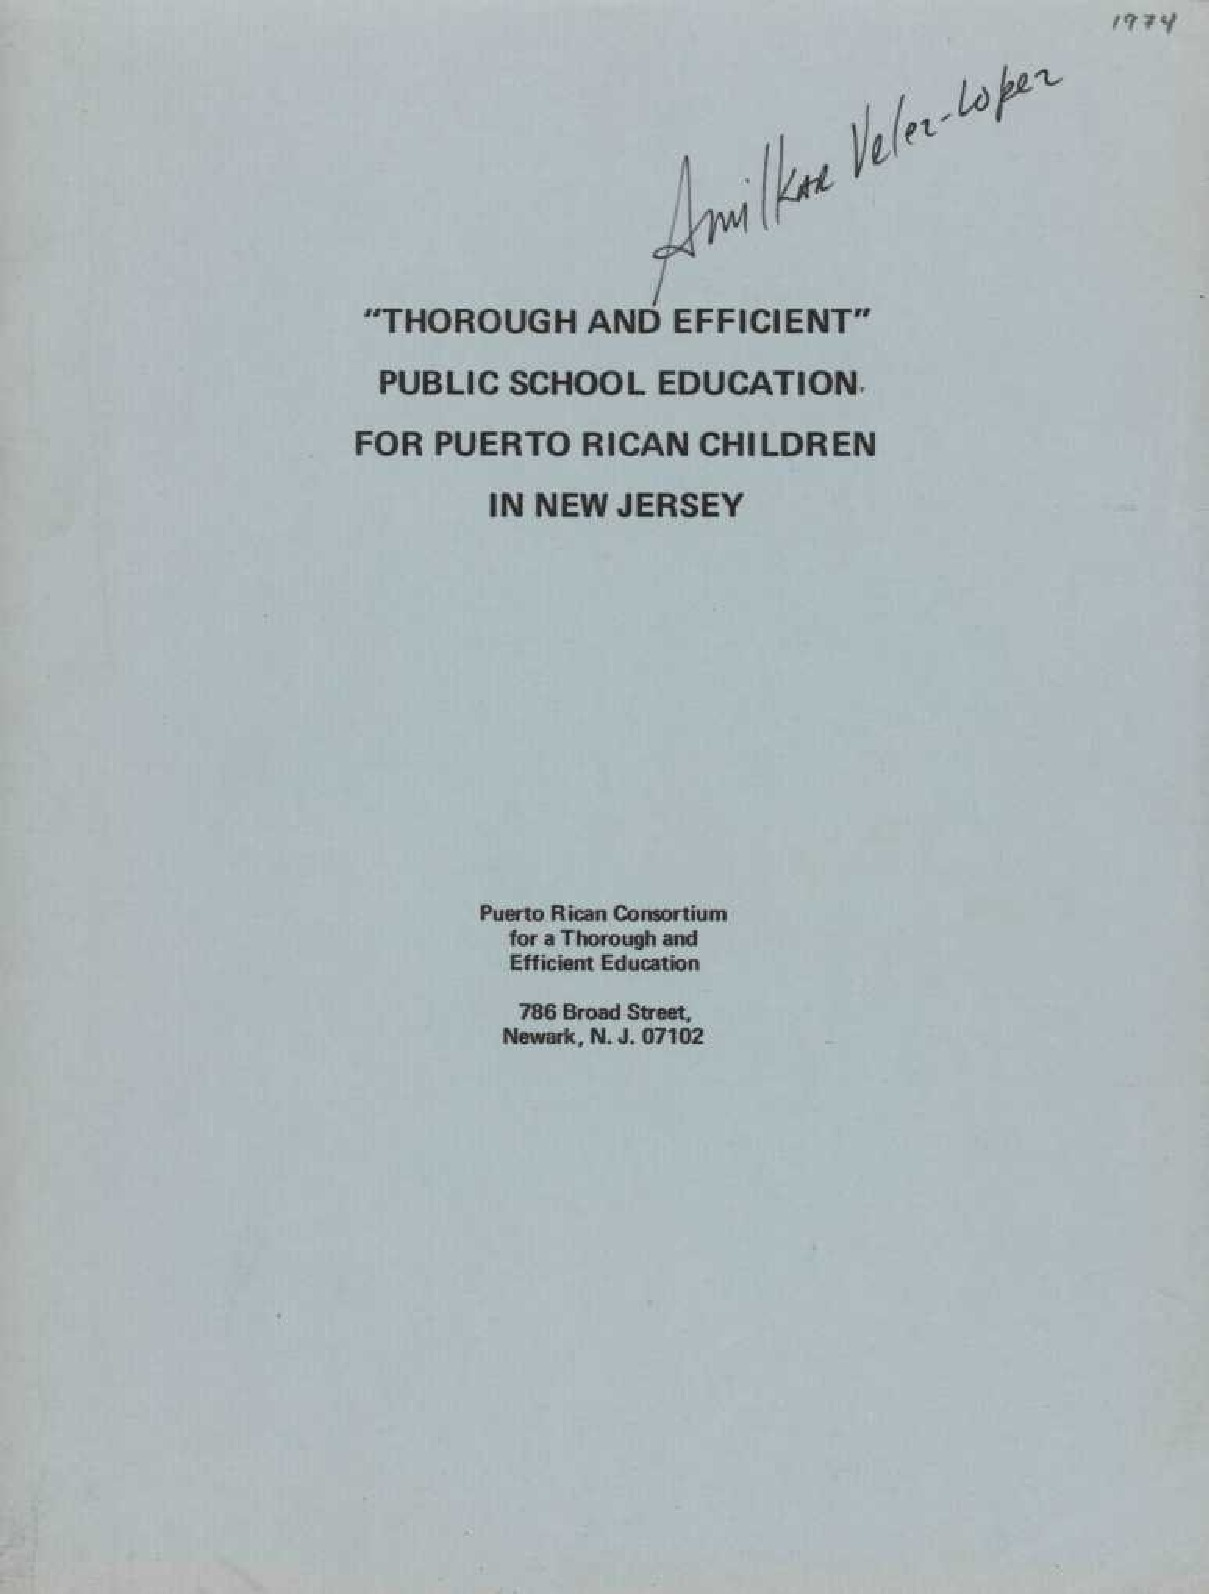 Thorough and Efficient Public School Education For Puerto Rican Children in NJ (1974)